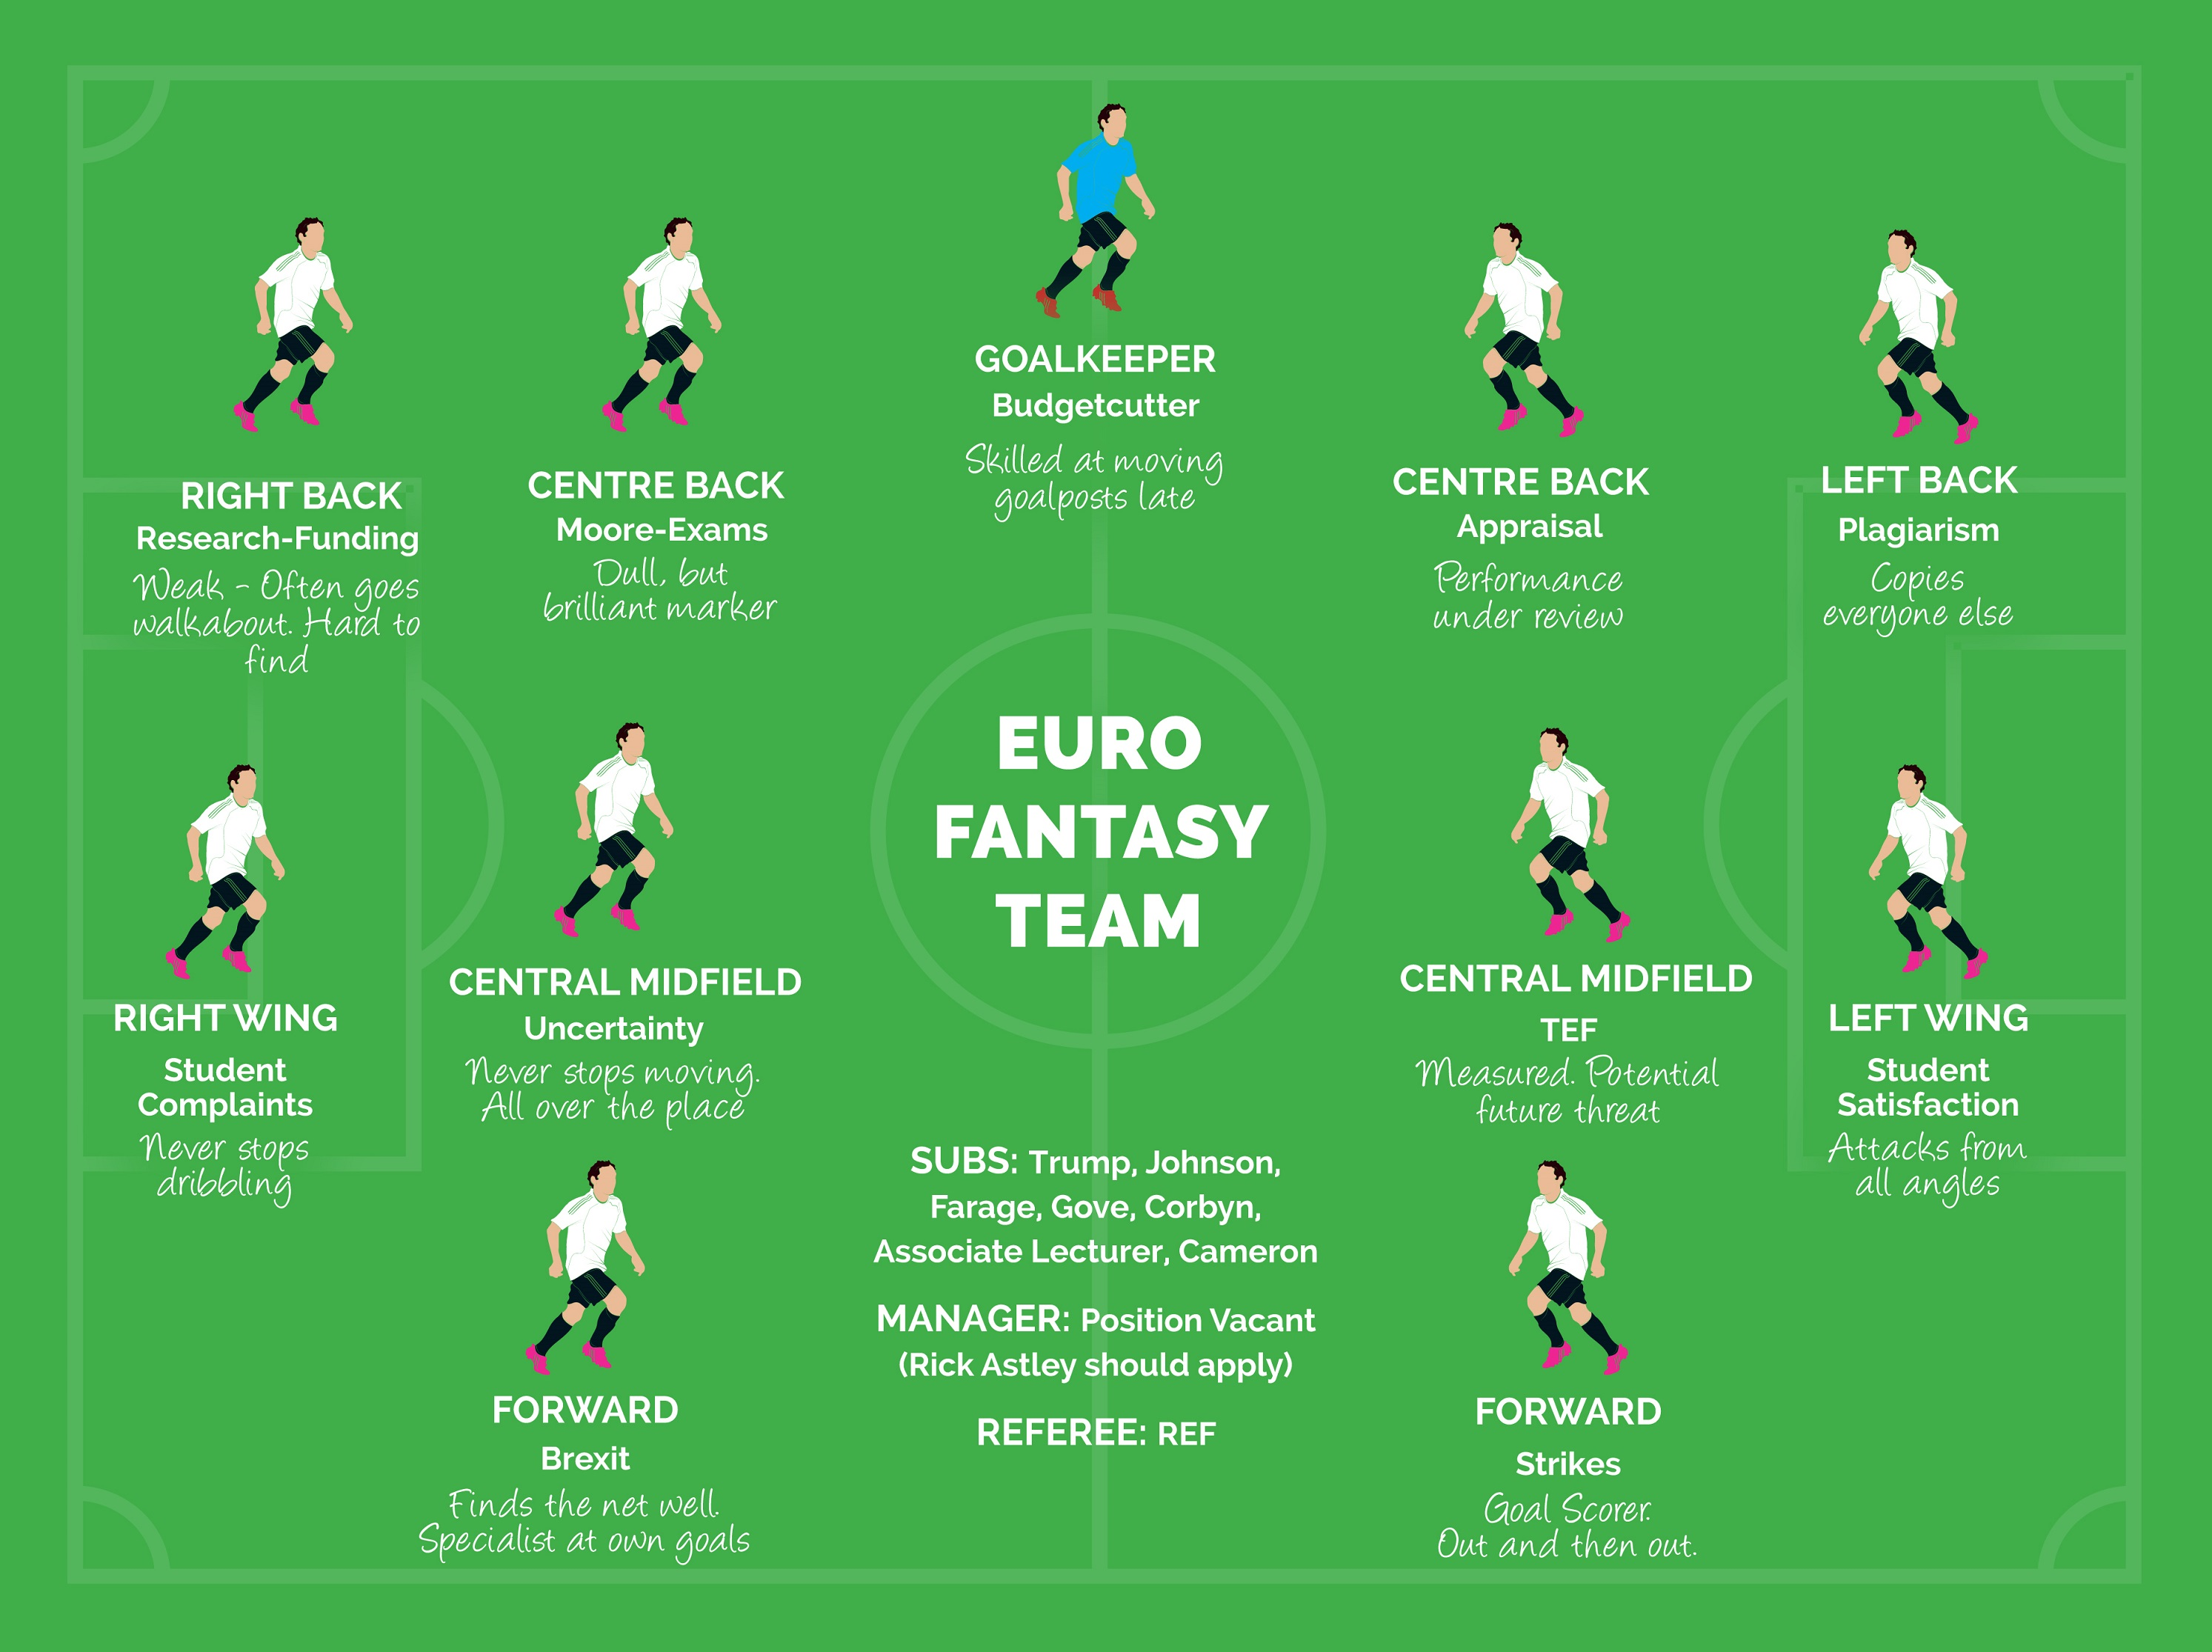 lose yourself in euro fantasy